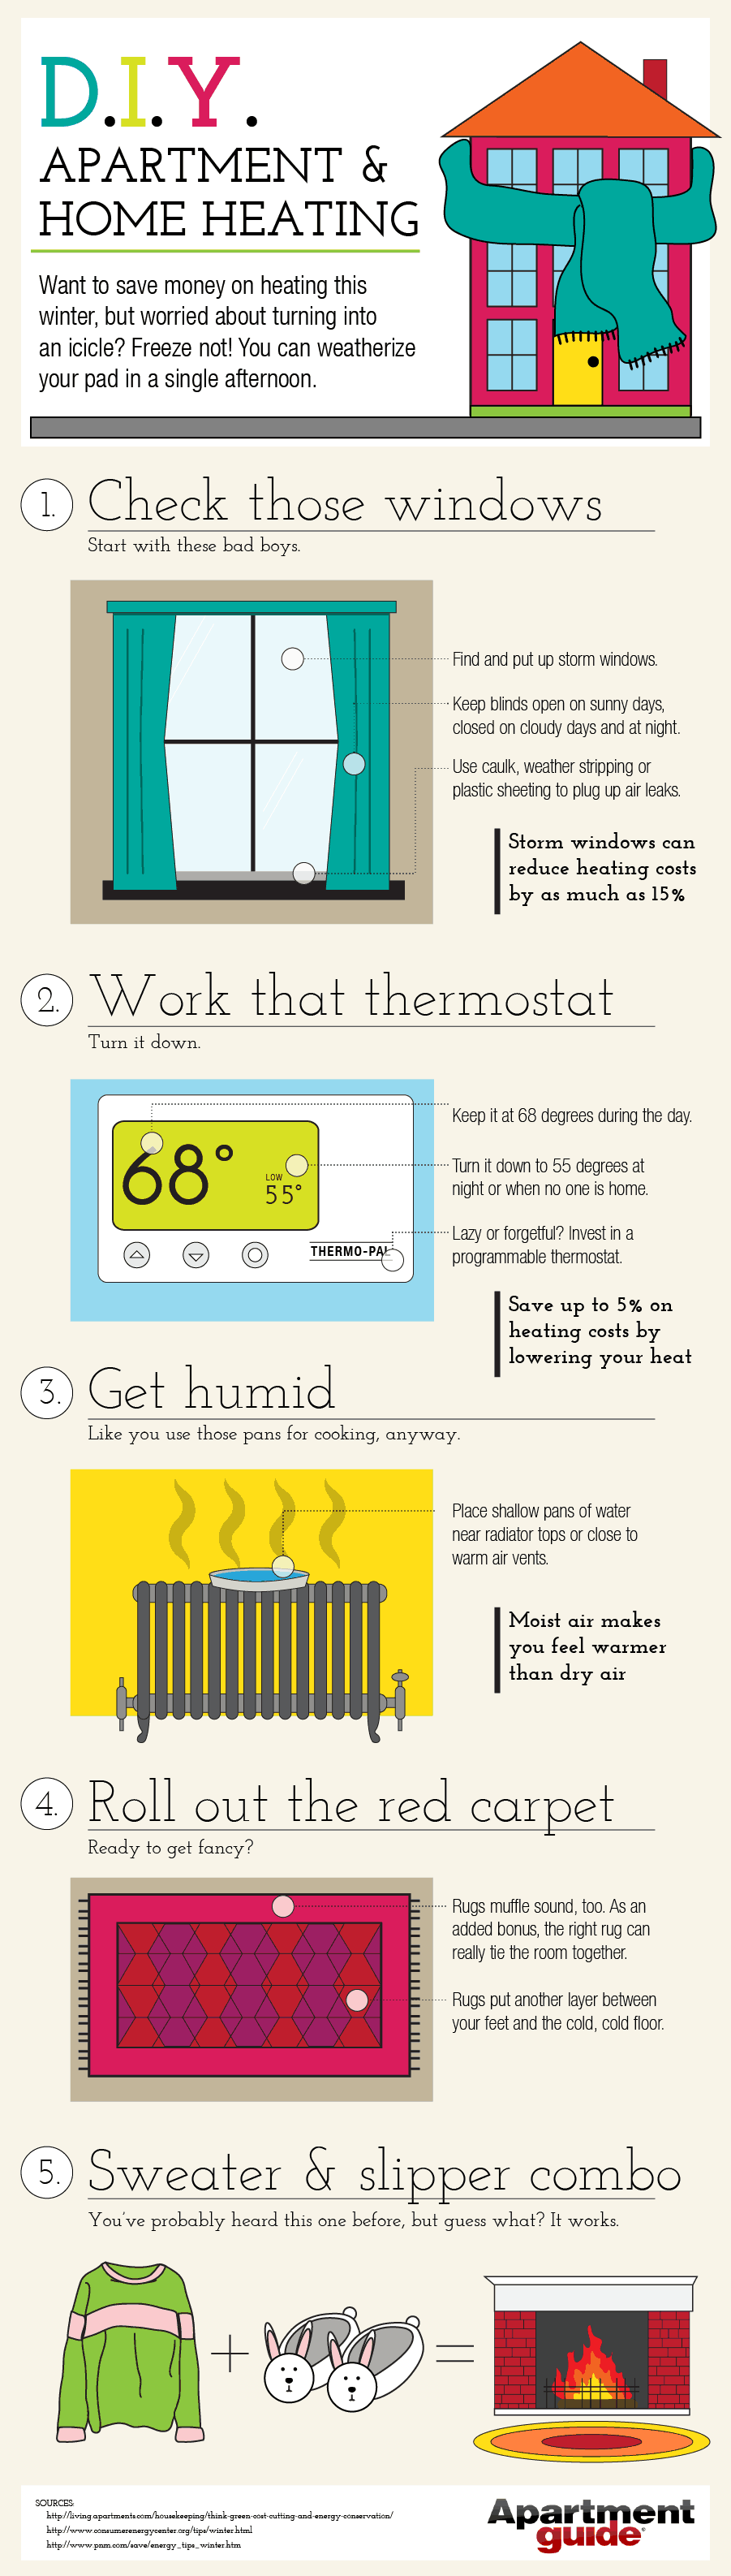 Diy Apartment Home Heating